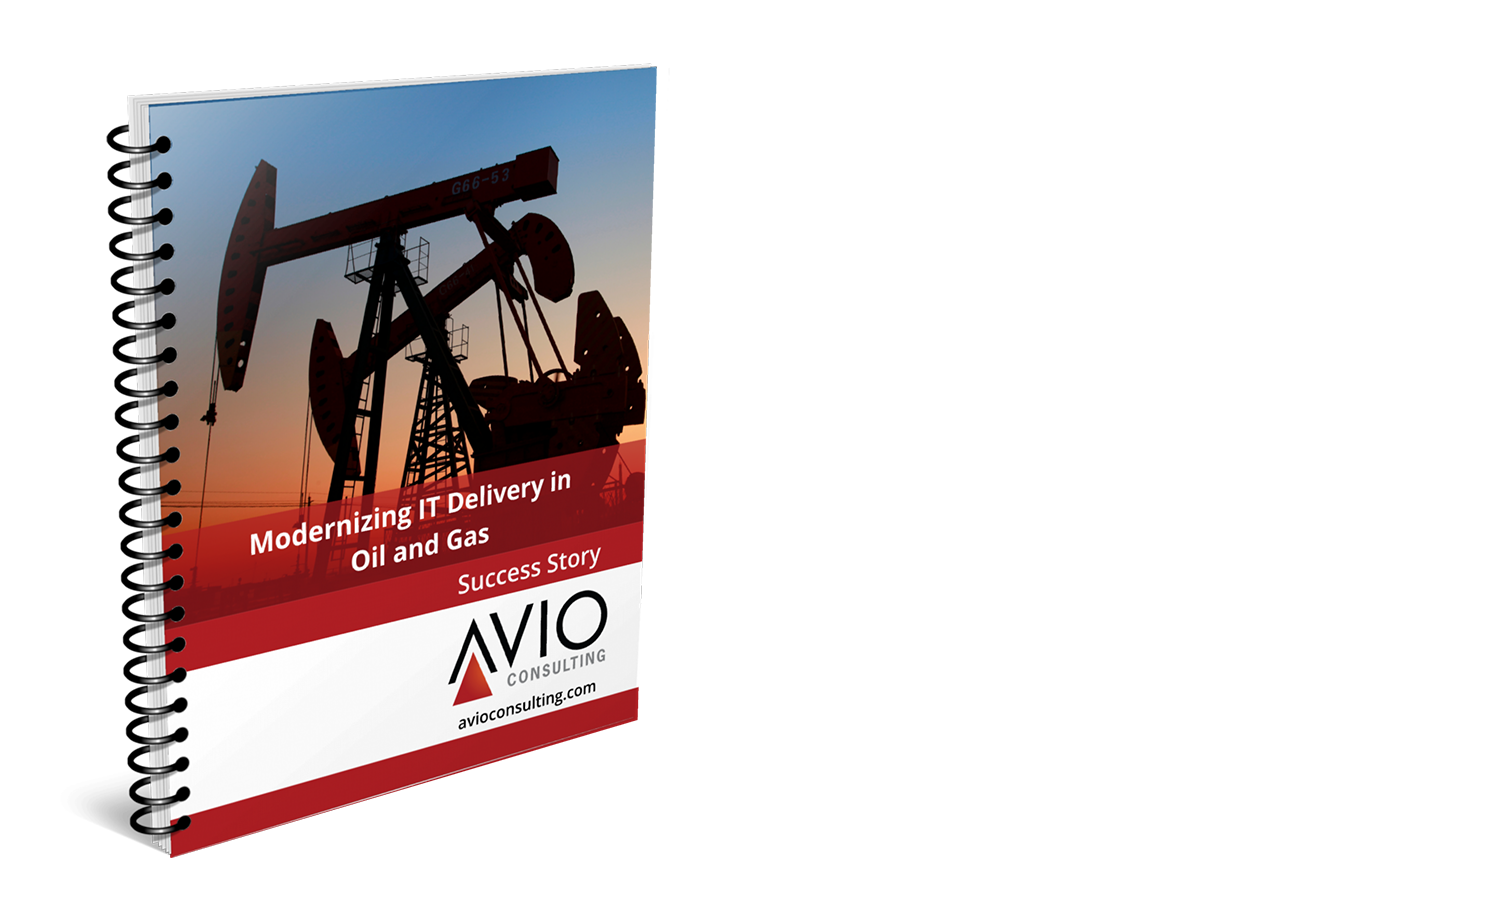 Case Study Preview - Modernizing IT Delivery in Oil and Gas